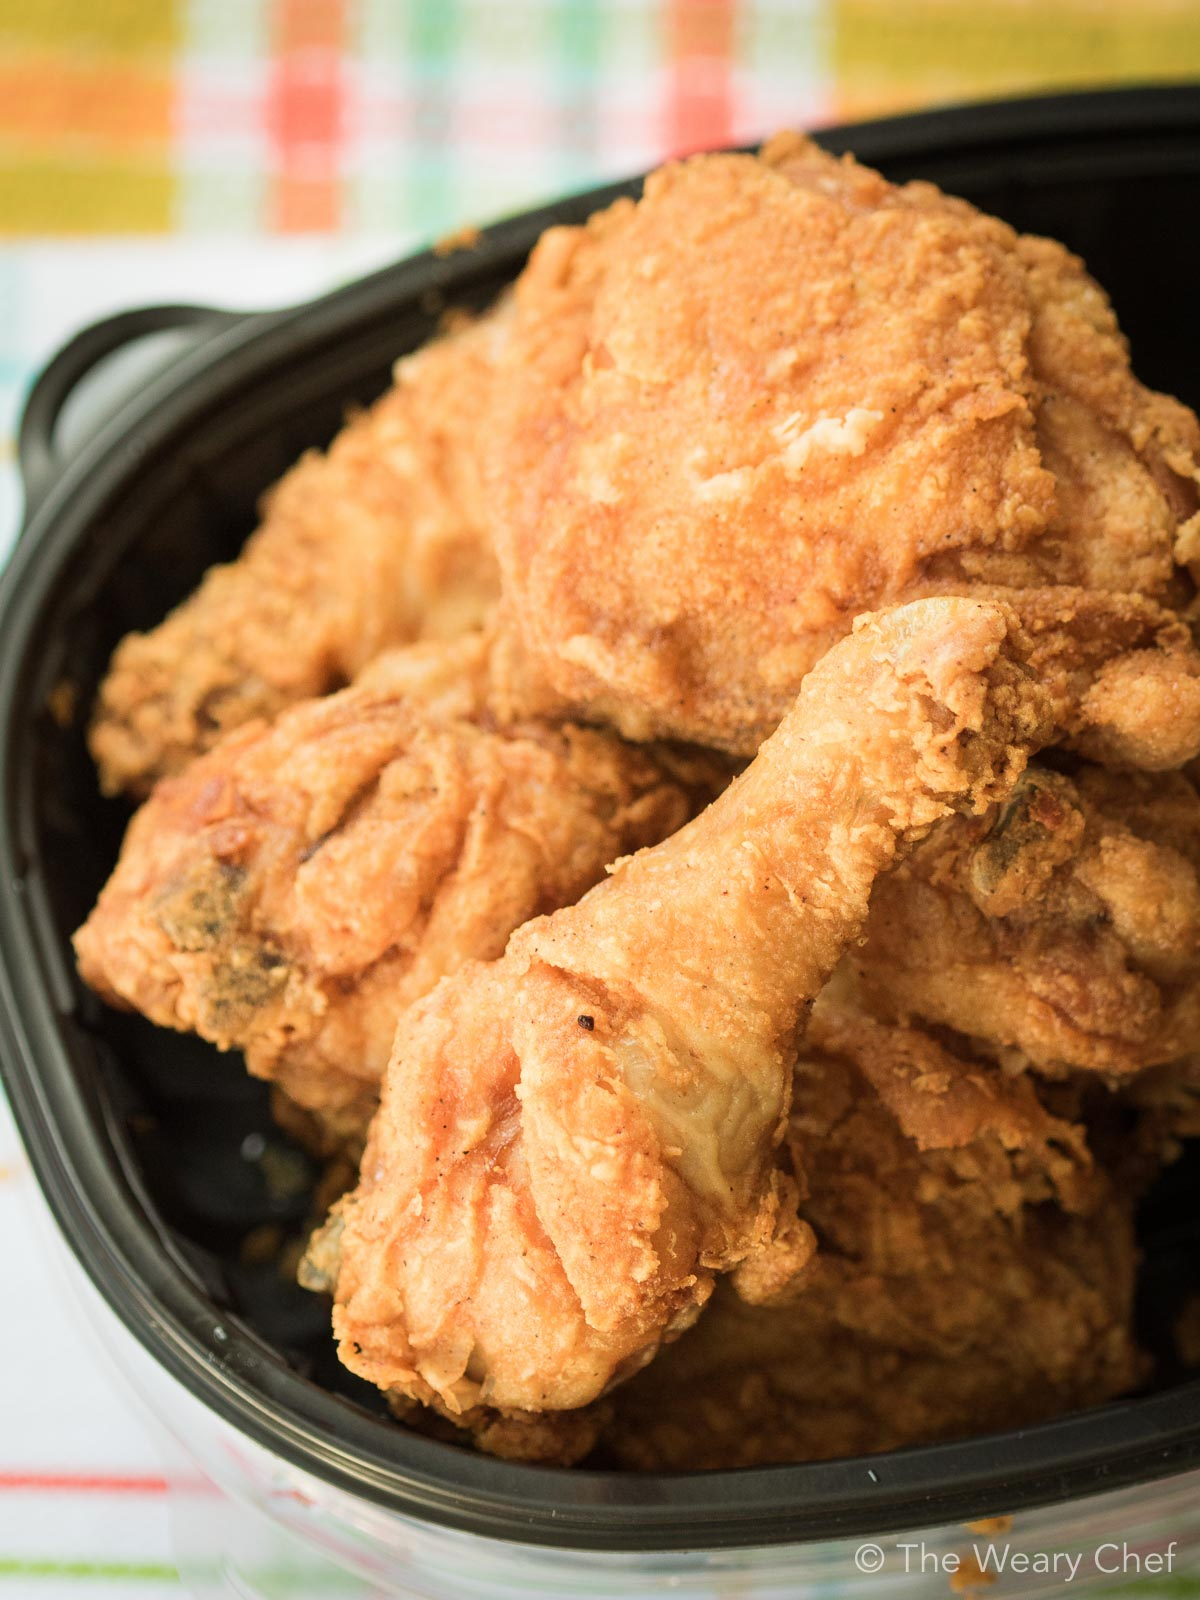 Grab yo' self some Safeway Signature Fried Chicken and find a perfect side dish recipe to go with it!